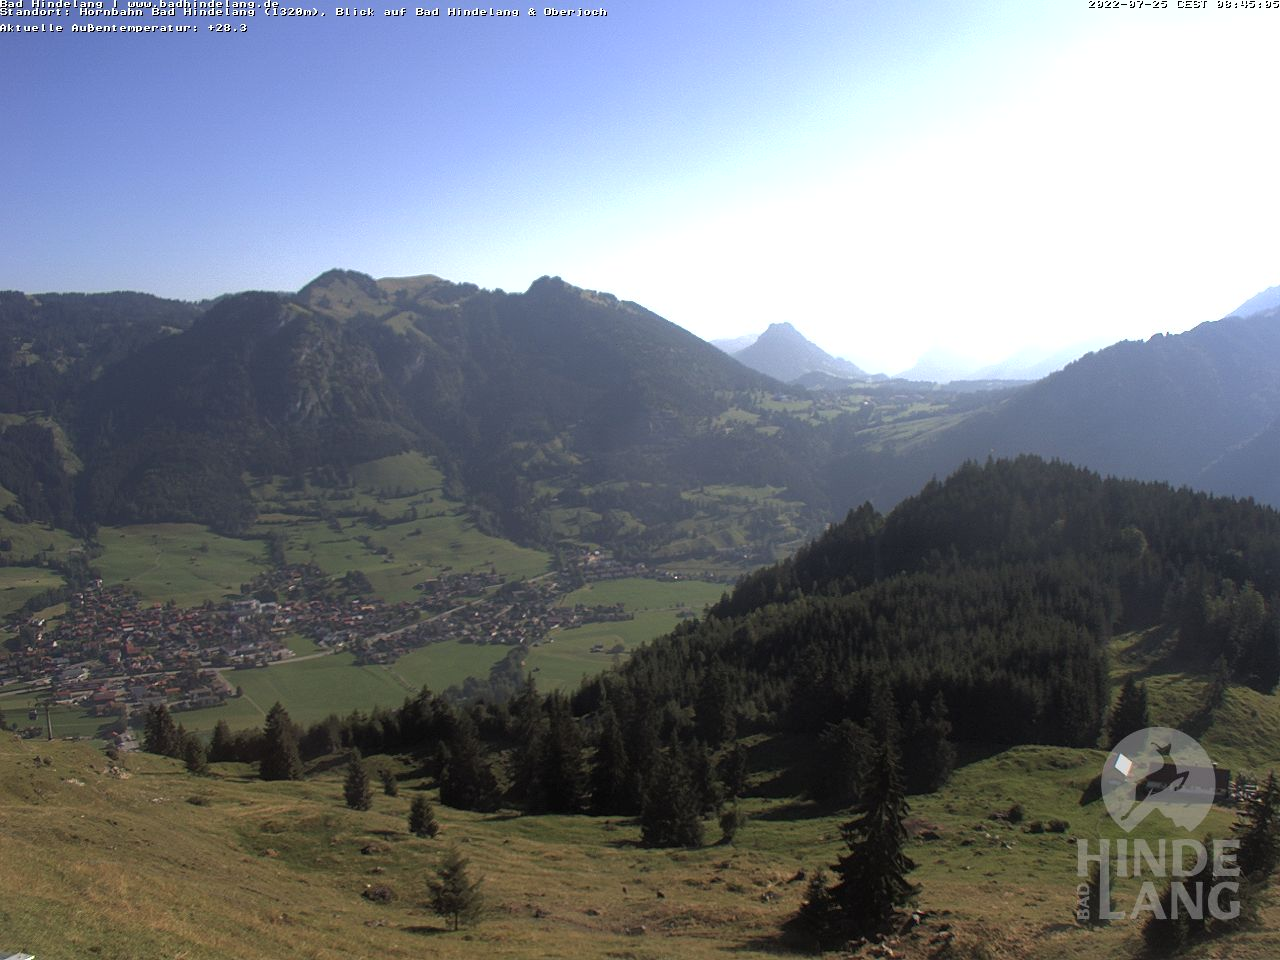 Webcam Hornbahn - Bad Hindelang